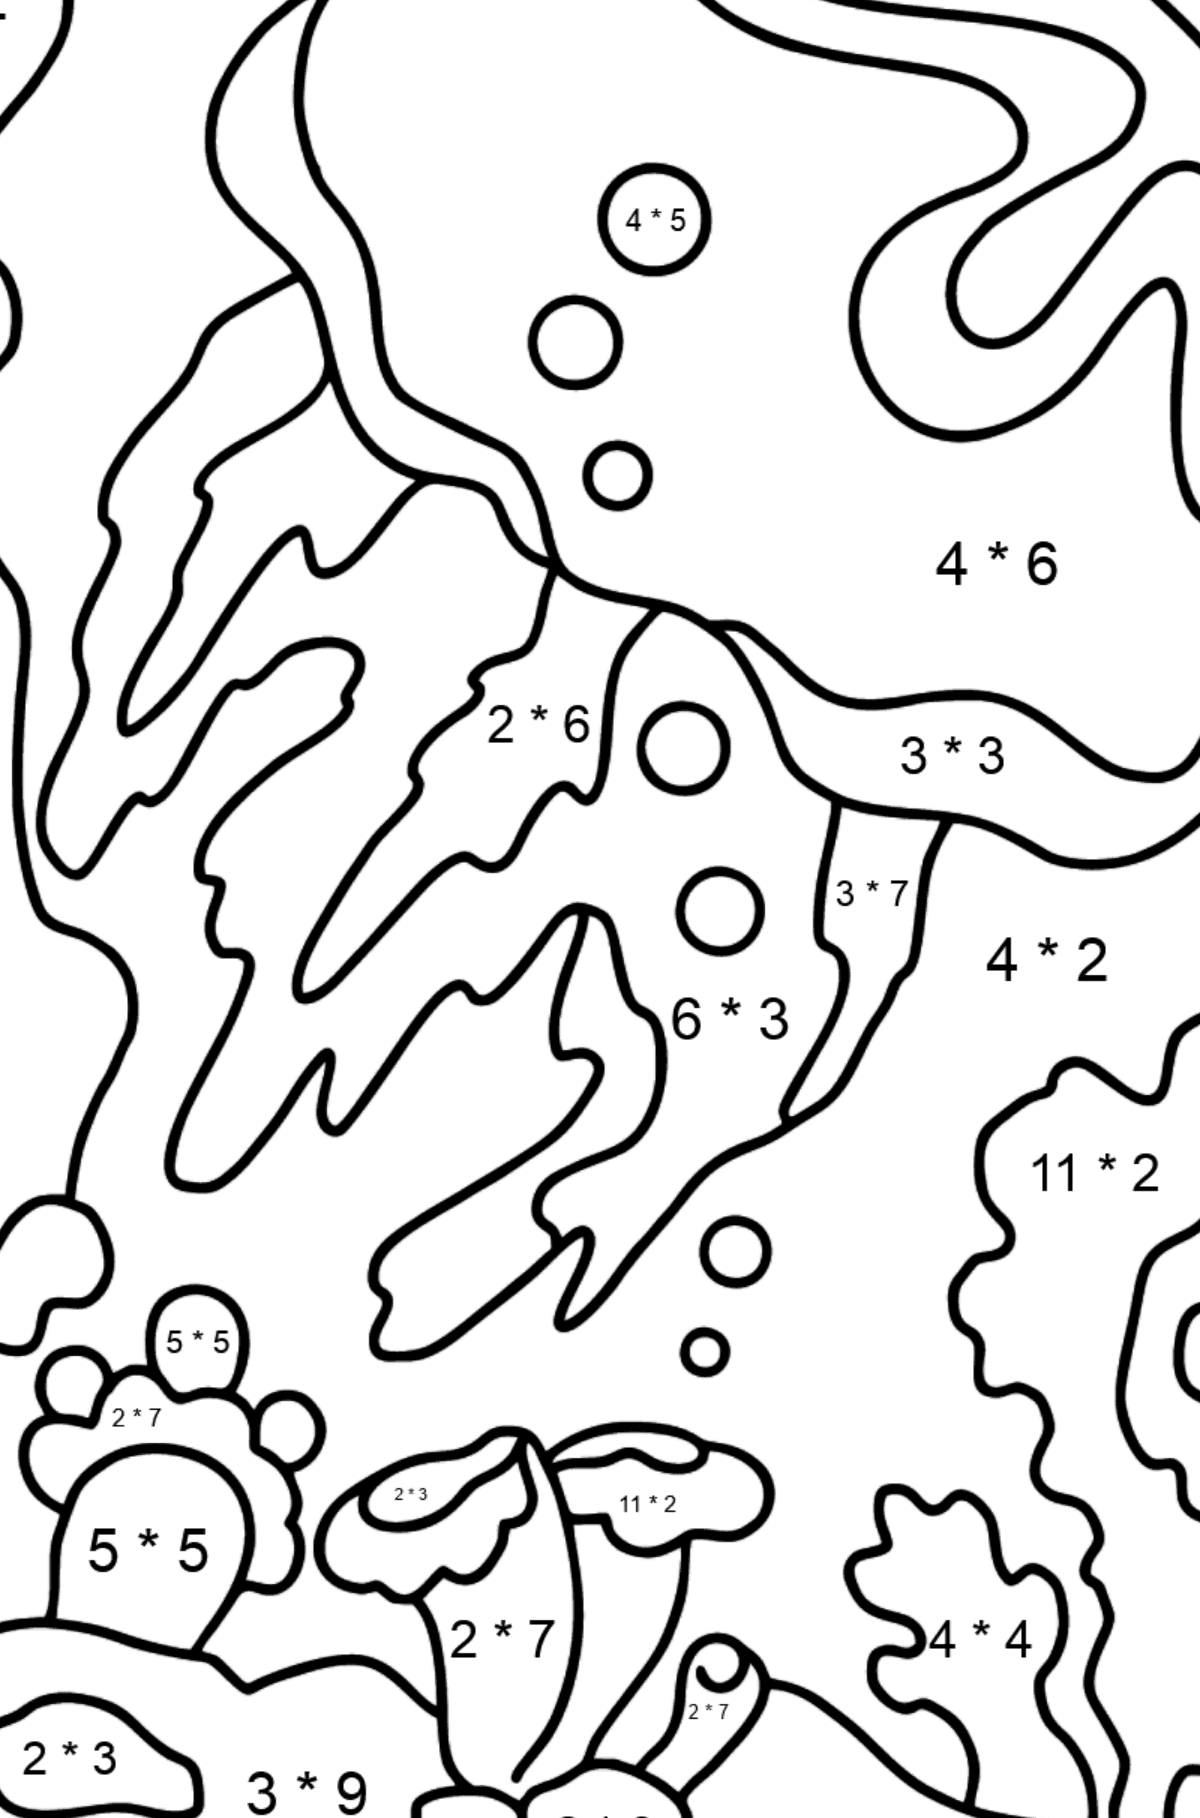 A Giant Jellyfish Coloring Page - Math Coloring - Multiplication for Kids